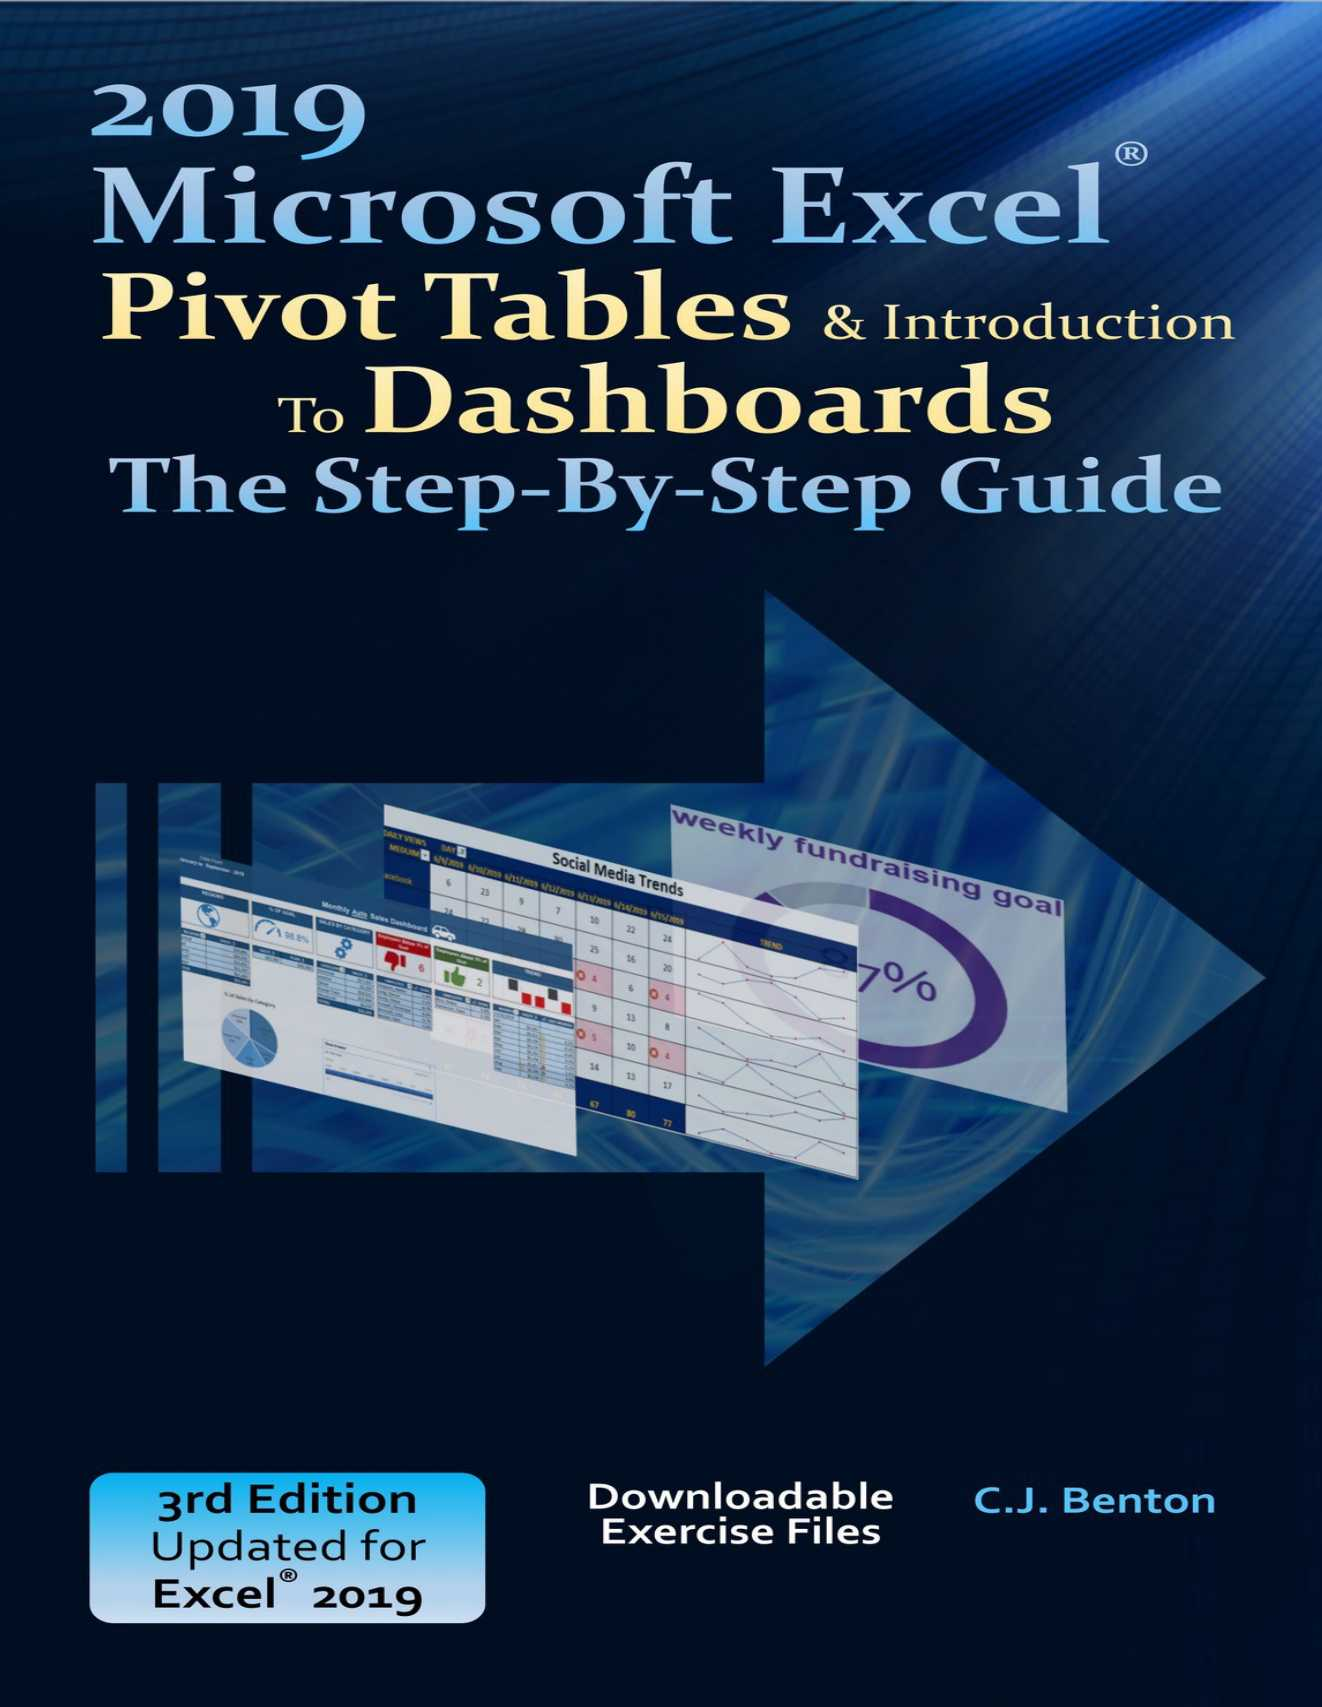 Excel 2019 Pivot Tables & Introduction To Dashboards The Step-By-Step Guide